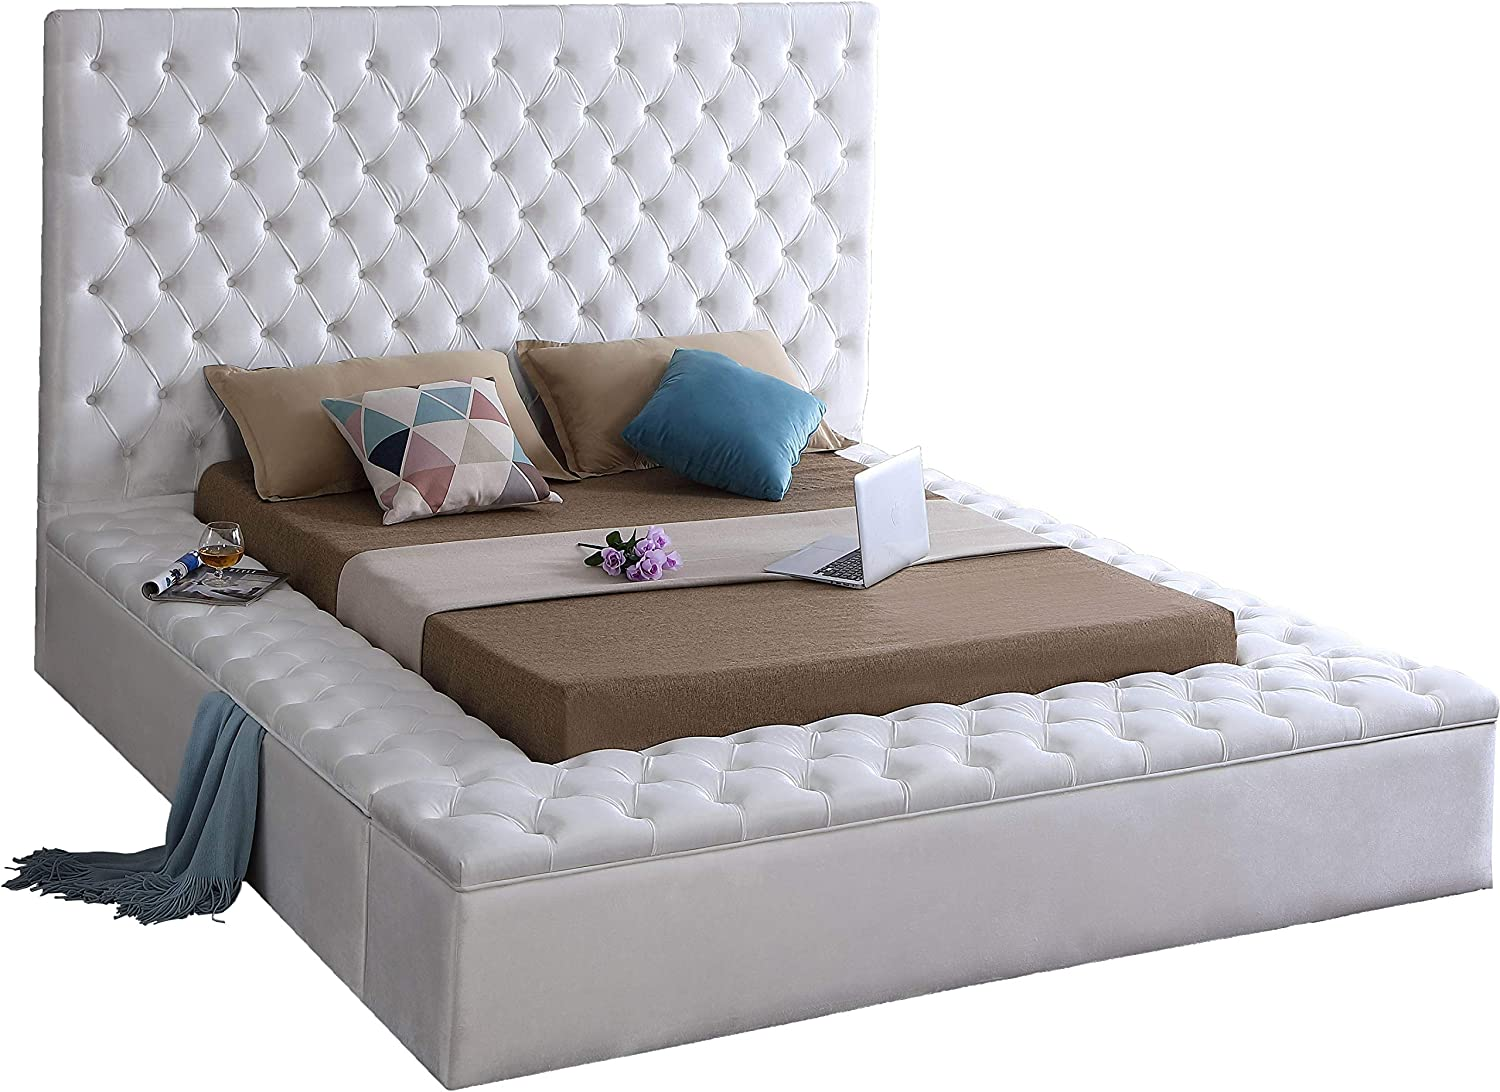 Meridian Furniture Bliss Collection Modern | Contemporary Velvet Upholstered Bed with Deep Button Tufting and Storage Compartments in Rails and Footboard, White, Queen